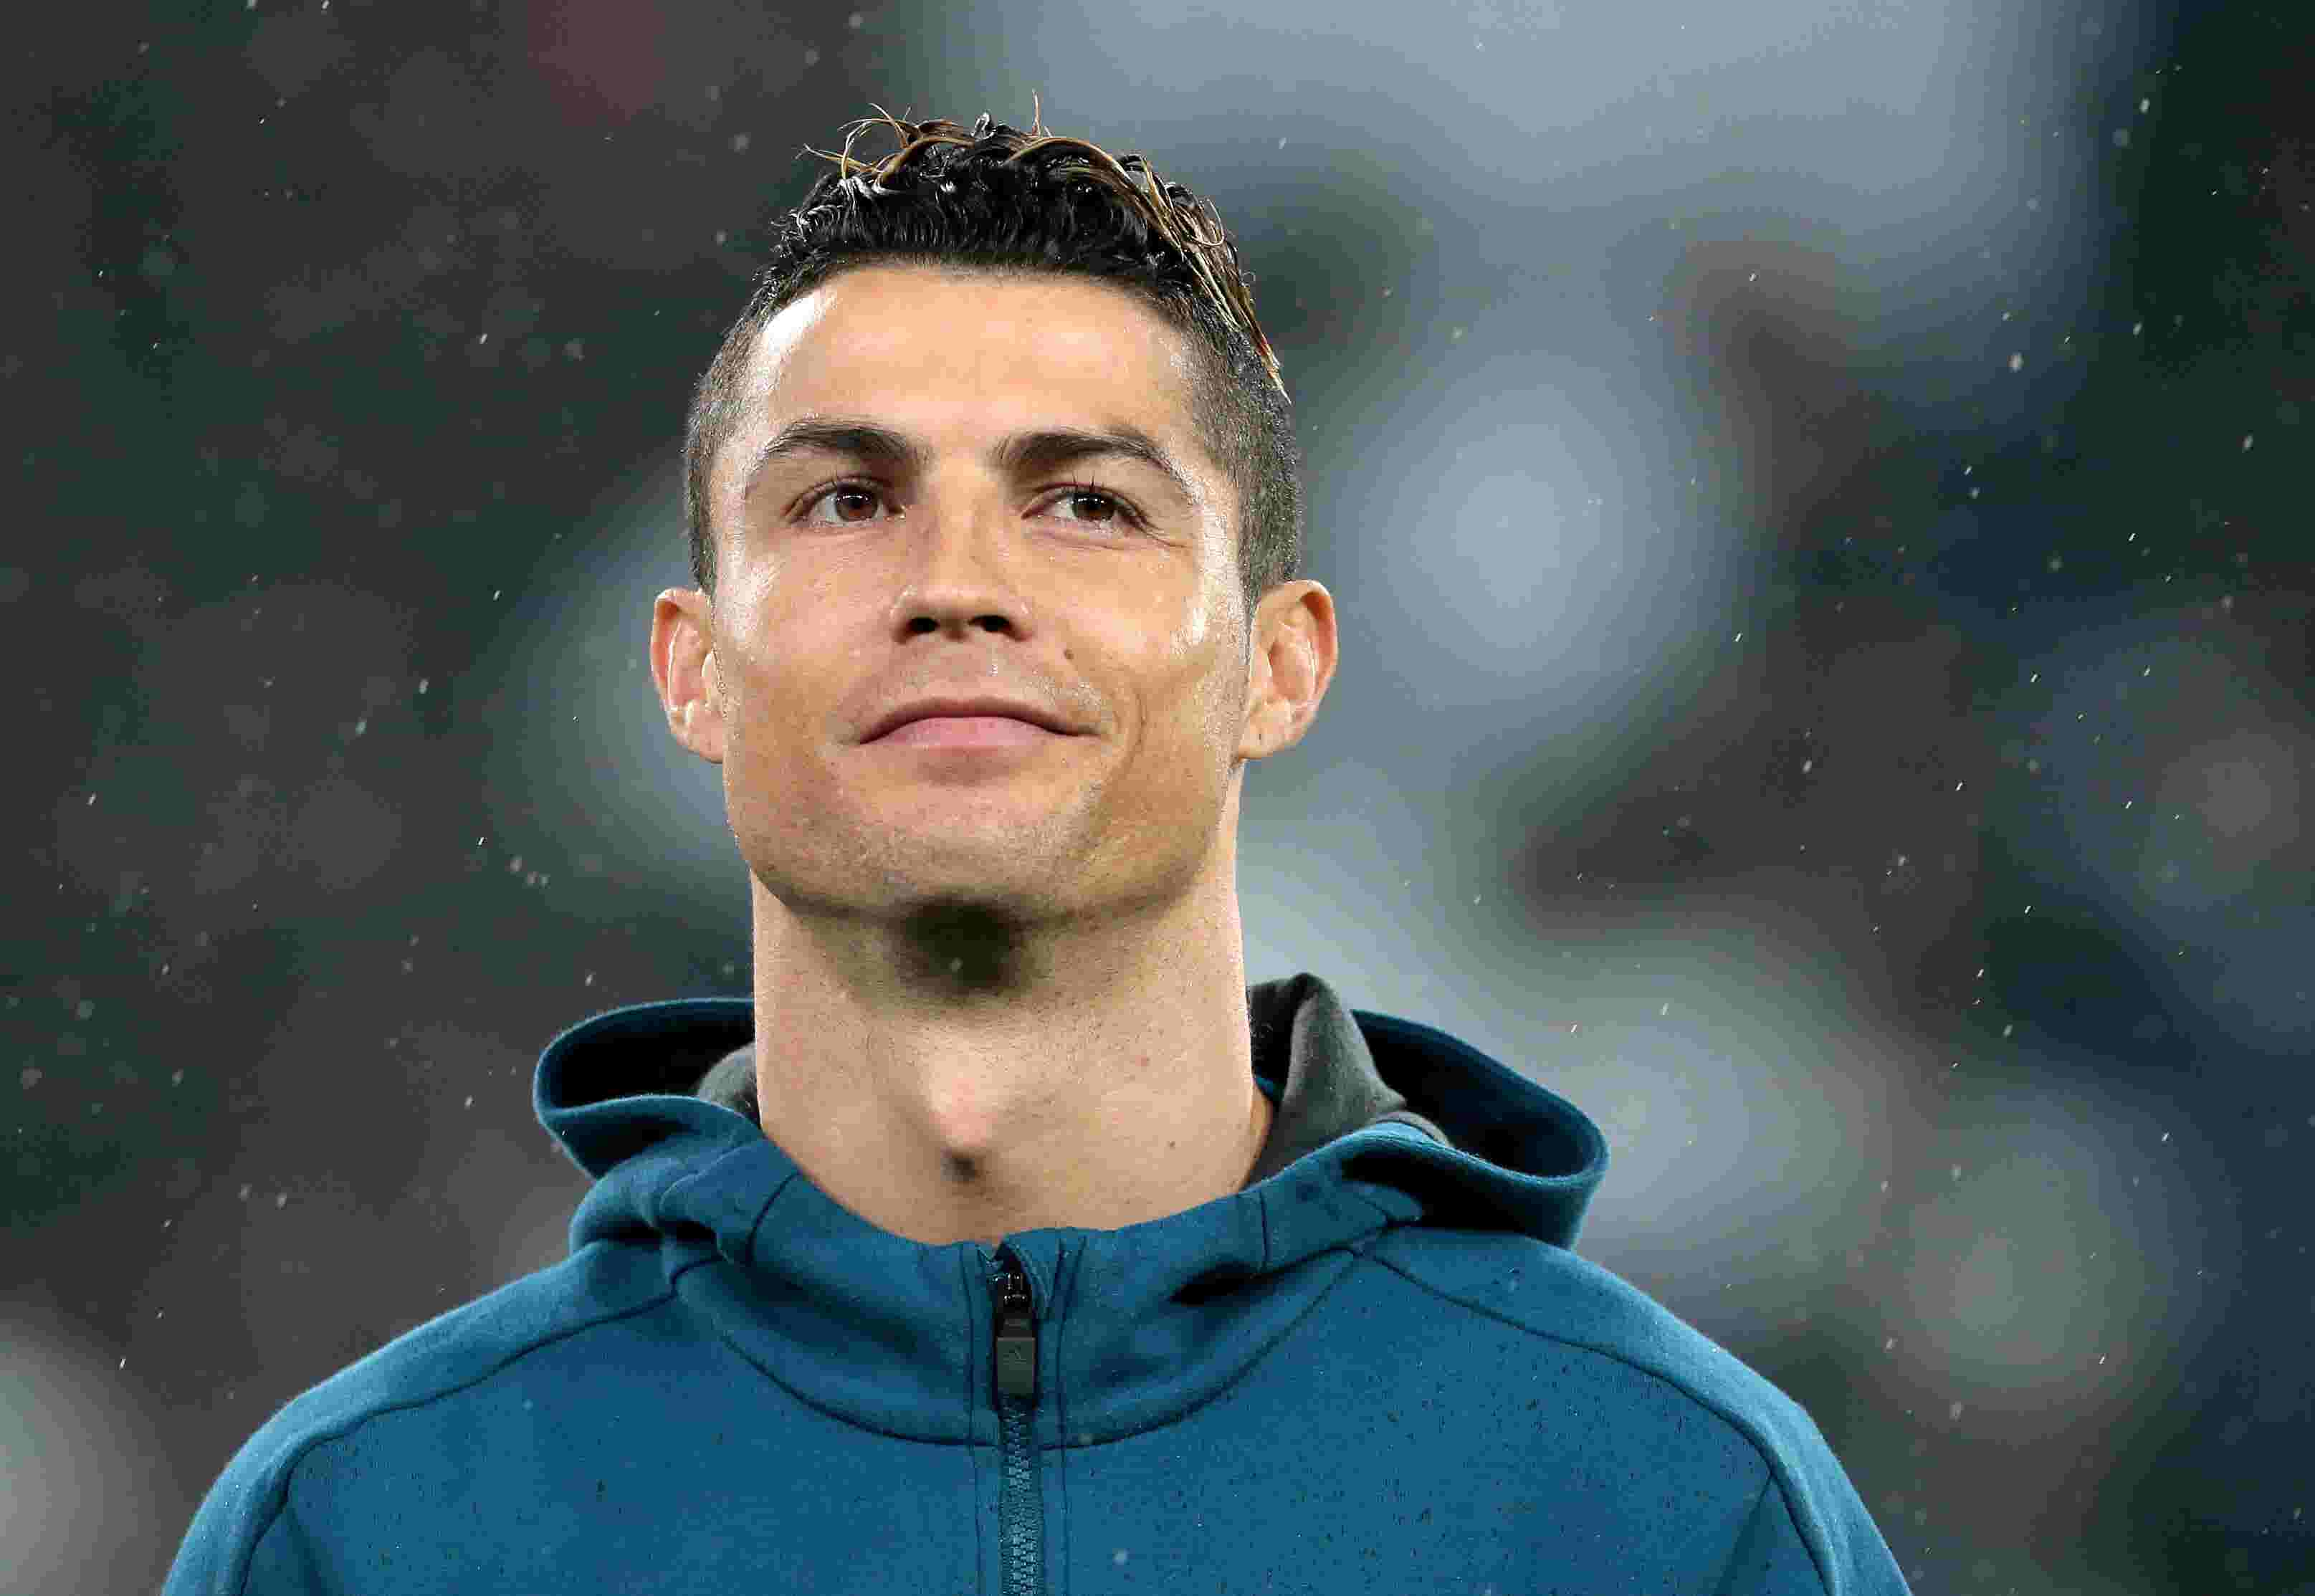 Fans React To Cristiano Ronaldo Deal As Juventus Takes On Real Madrid